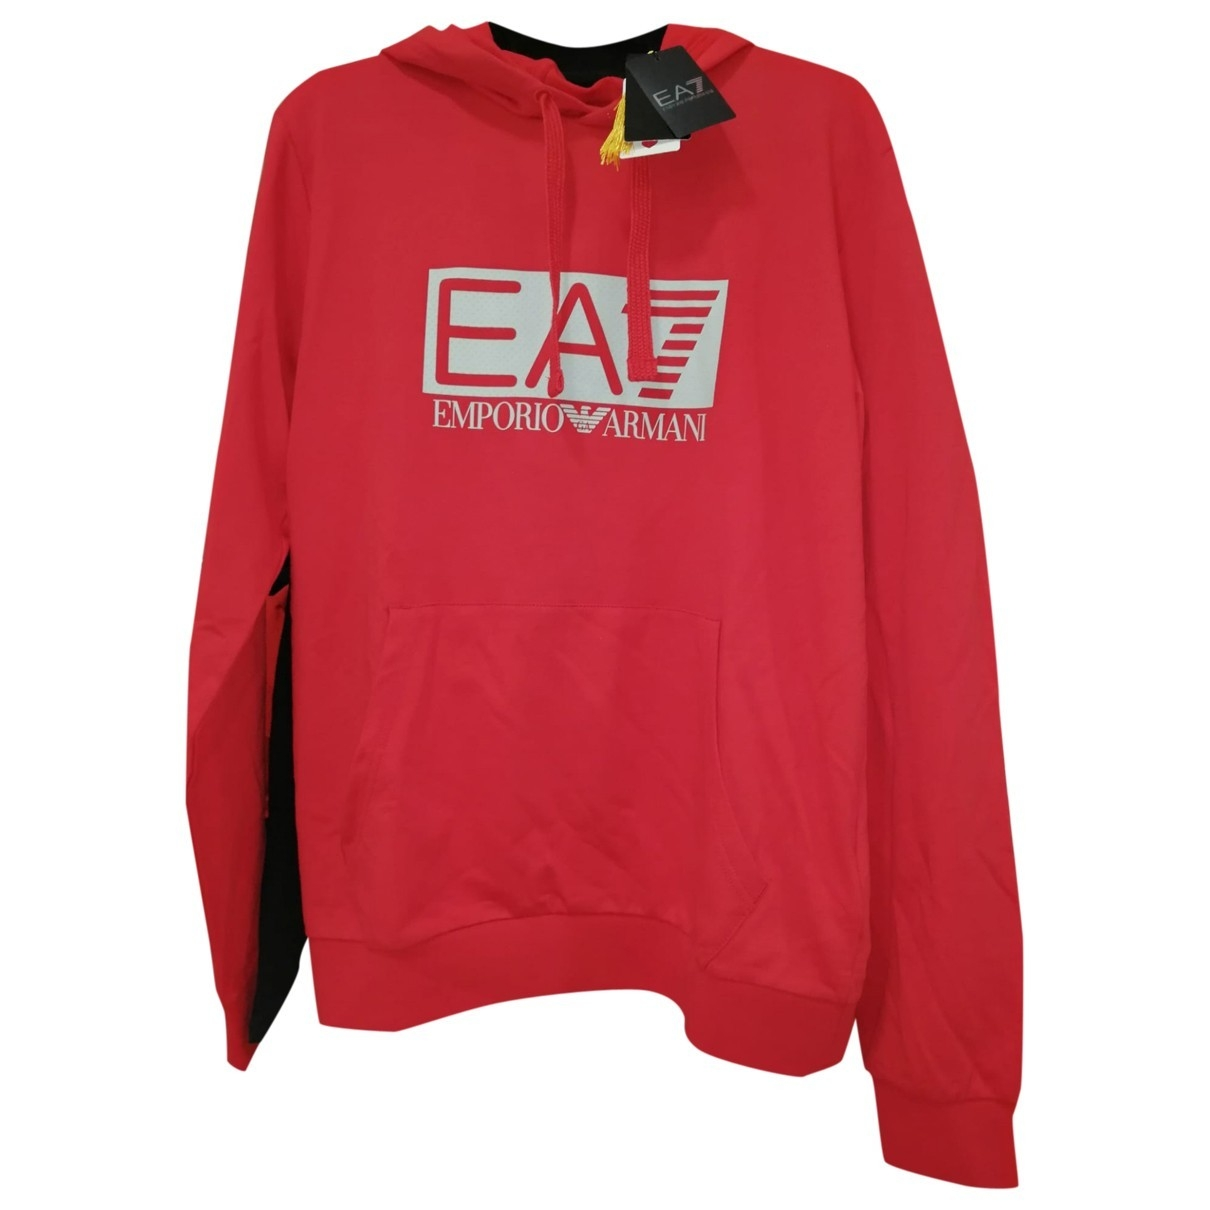 Emporio Armani \N Red Cotton Knitwear & Sweatshirts for Men L International